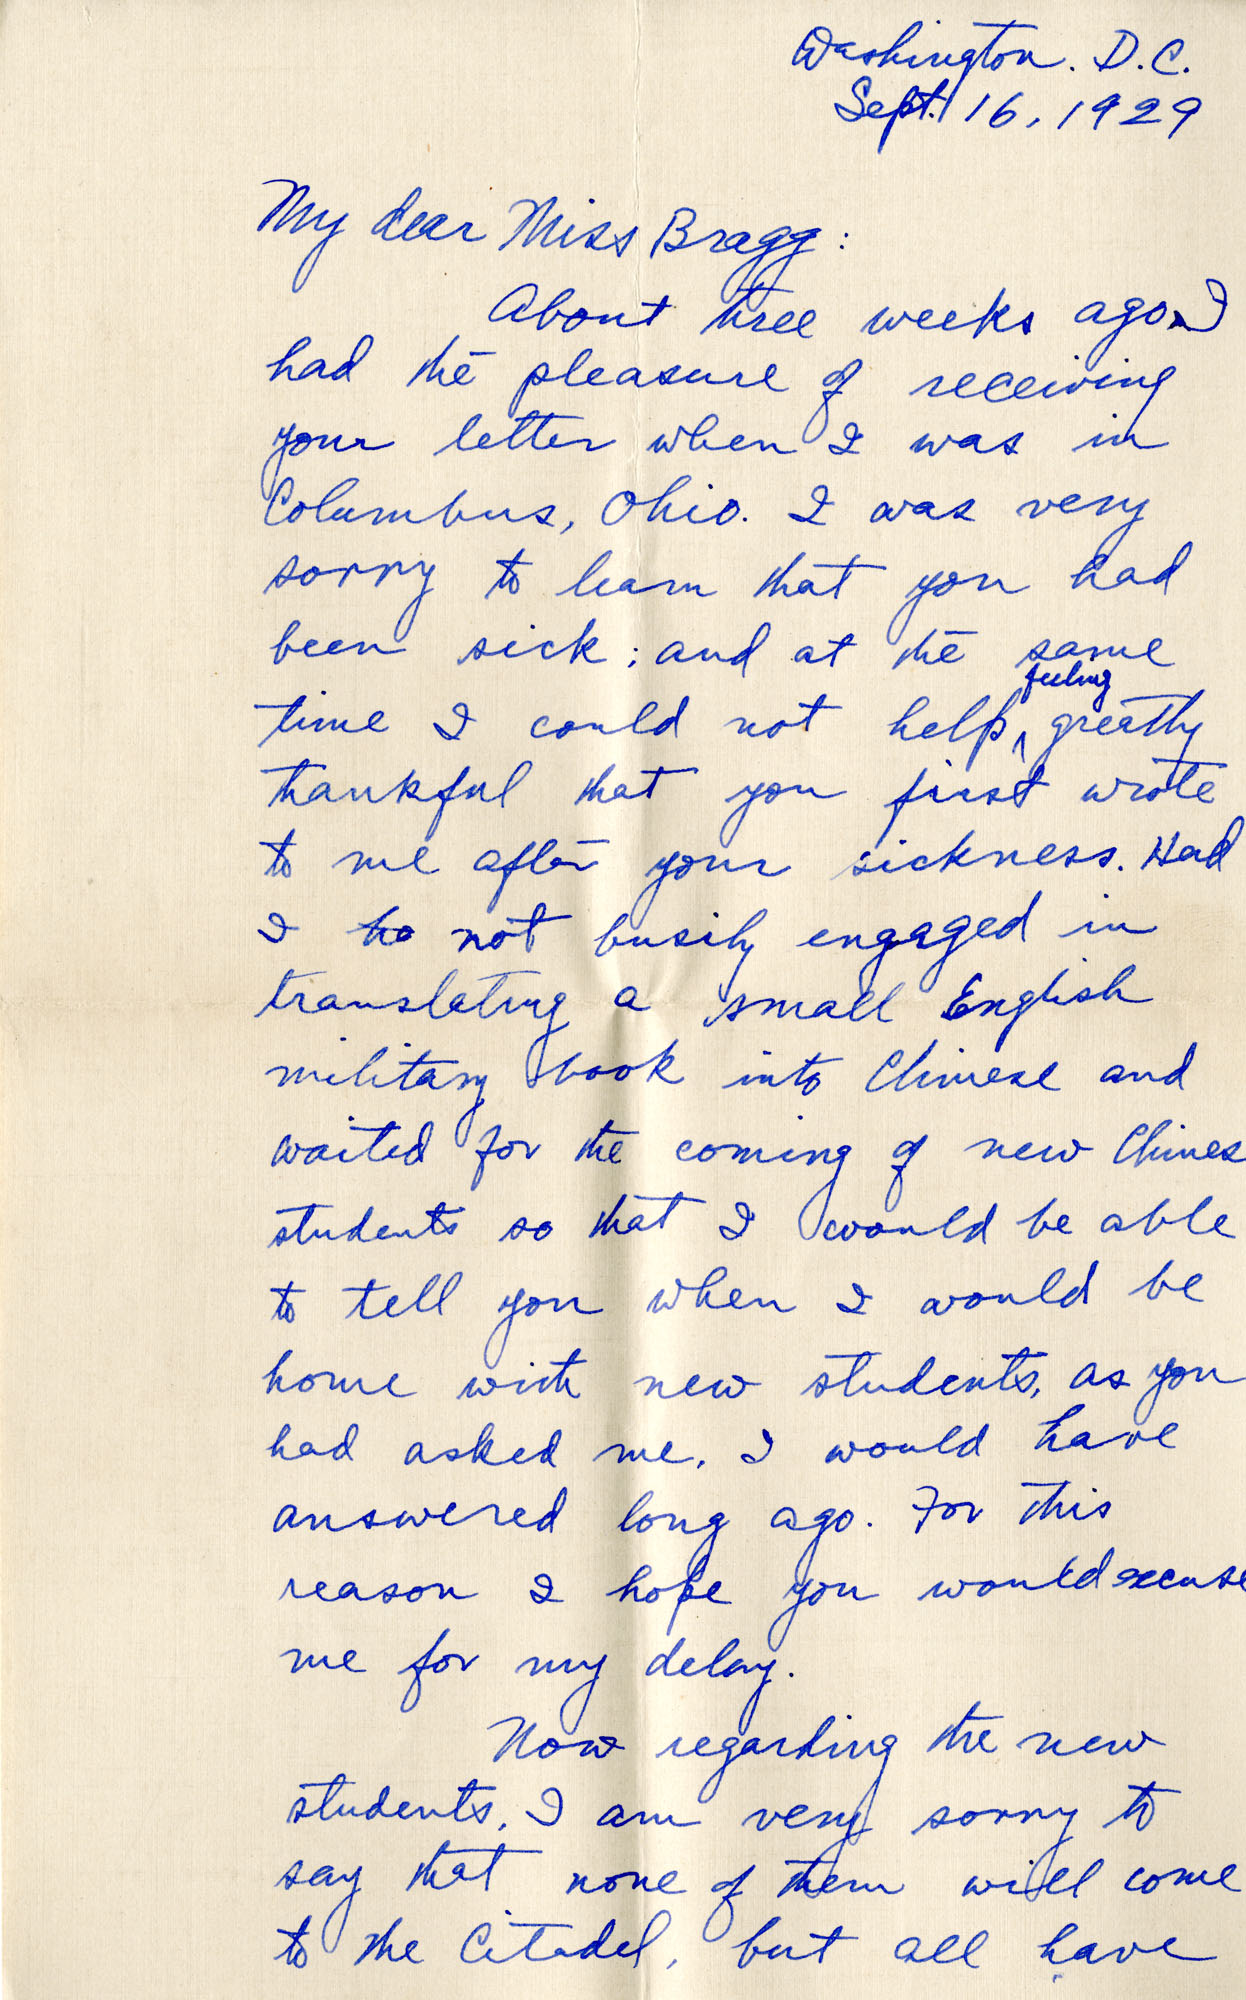 Letter from Fong Lee Wong to Laura M. Bragg, September 16, 1929